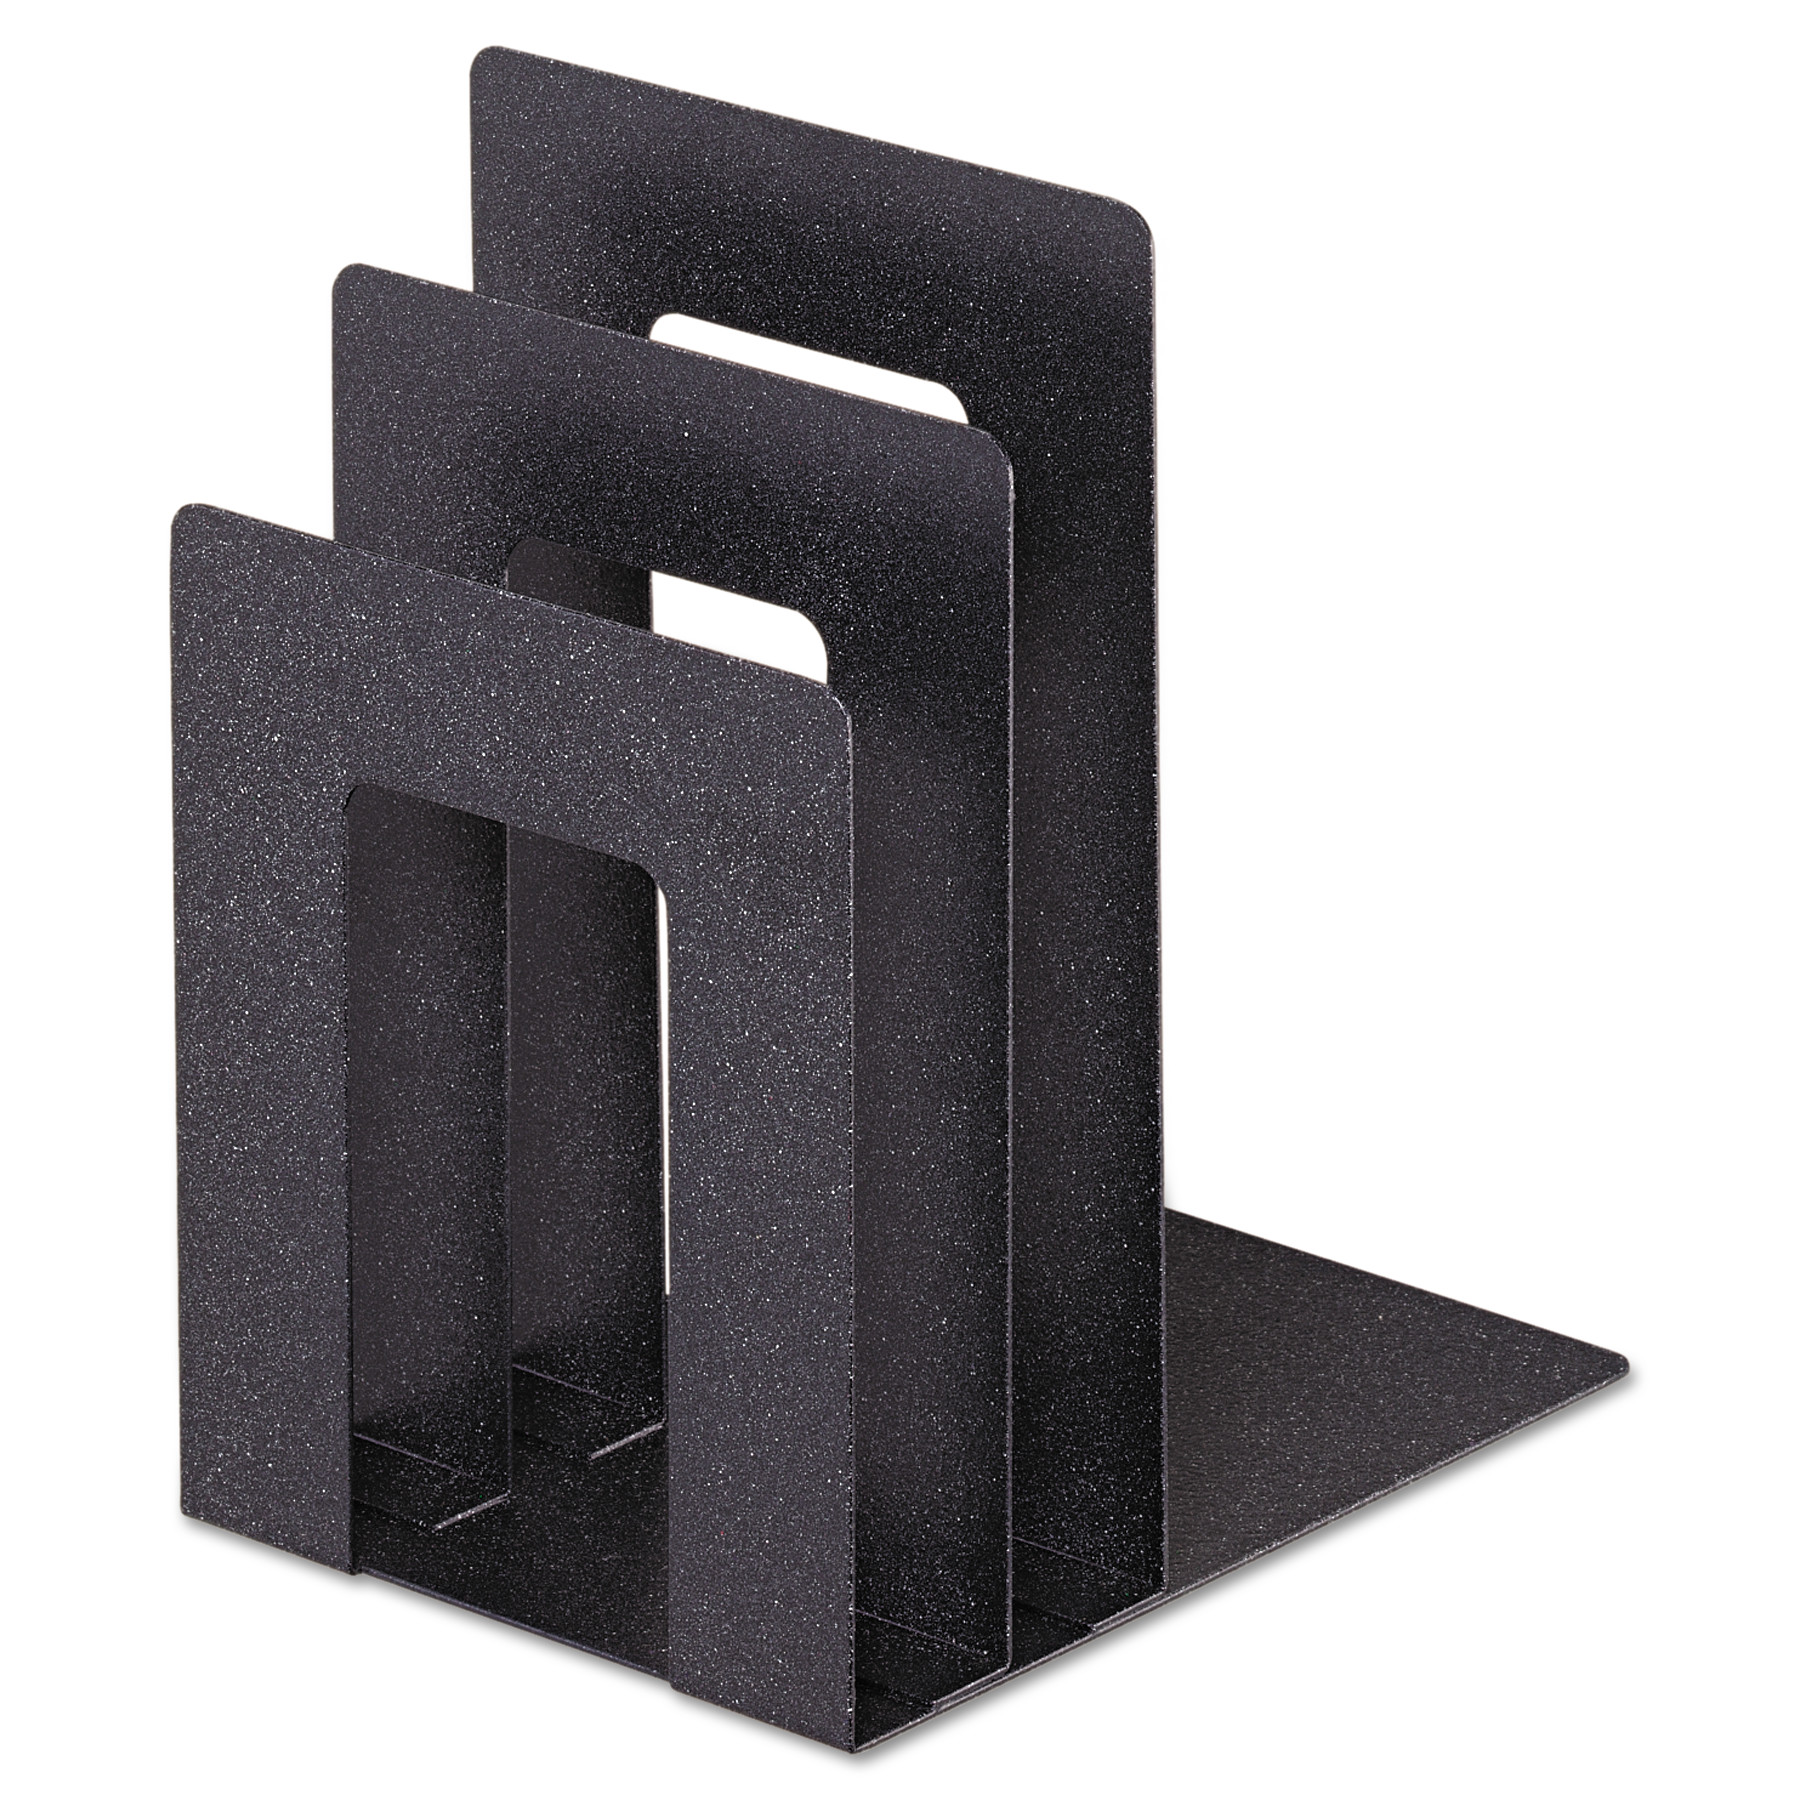 SteelMaster Soho Bookend with Squared Corners, 5w x 7d x 8h, Granite